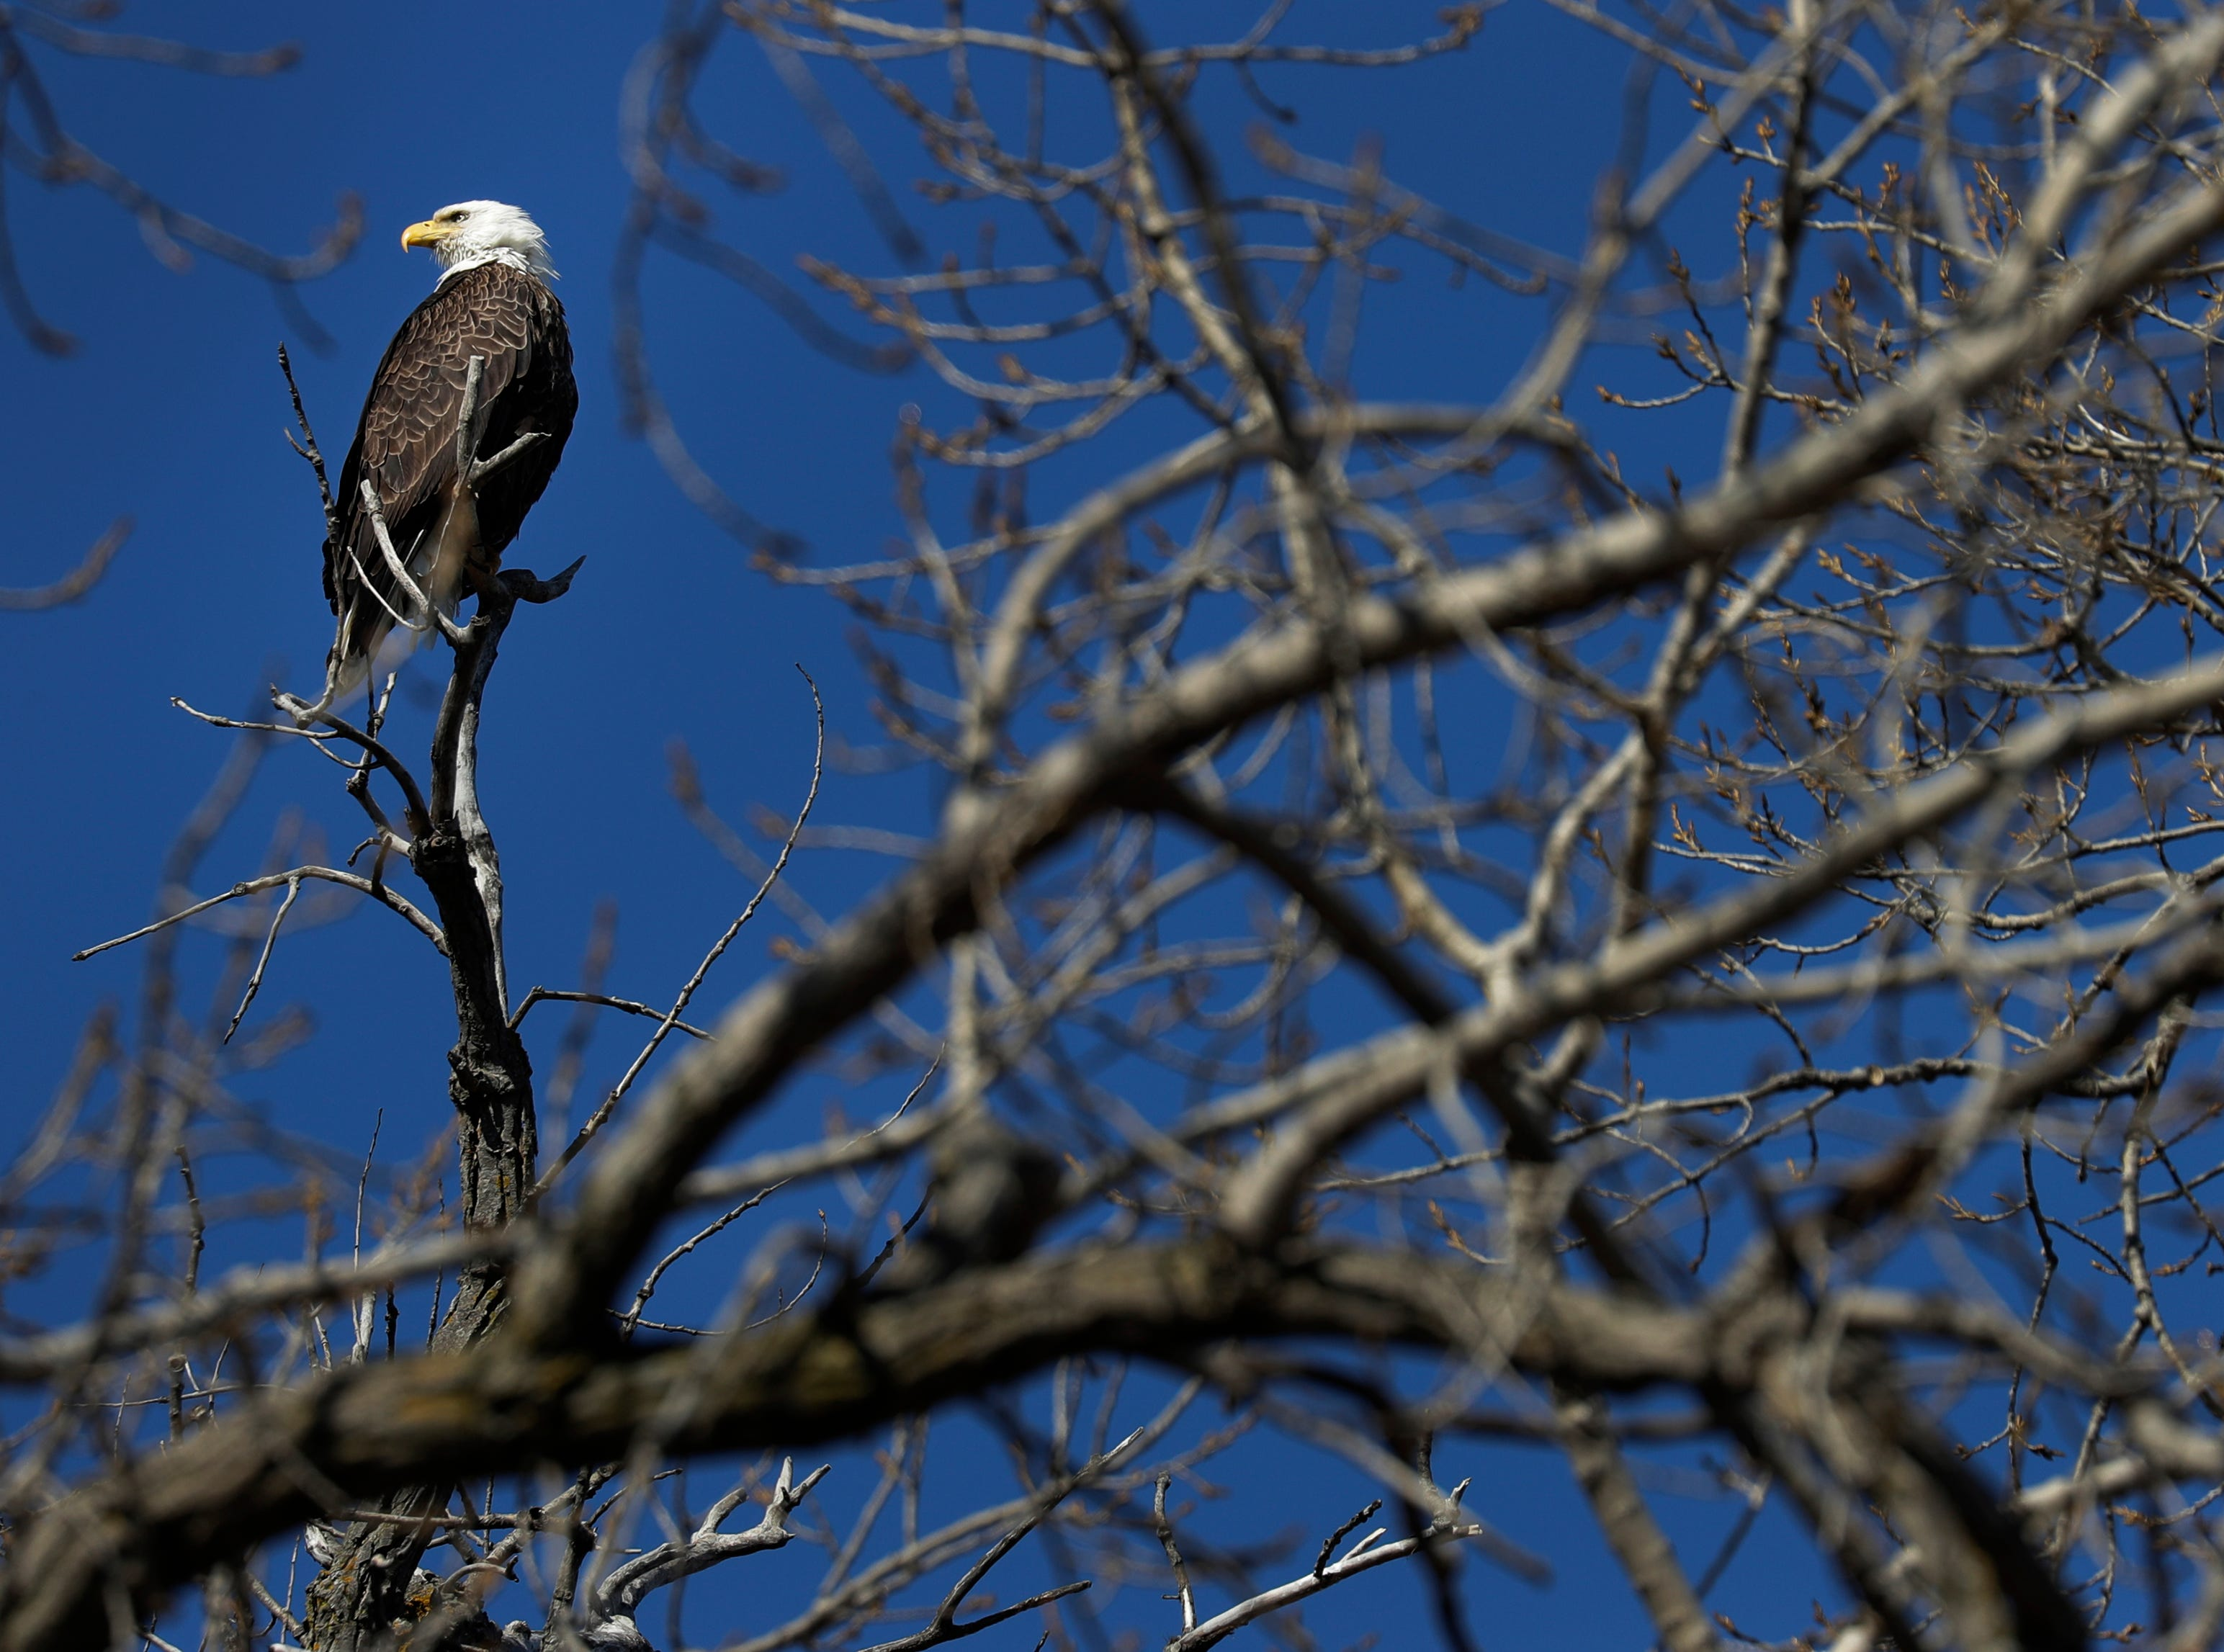 A bald eagle is perched along Bayview Road Monday, March 25, 2019, in Neenah, Wis. Dan Powers/USA TODAY NETWORK-Wisconsin